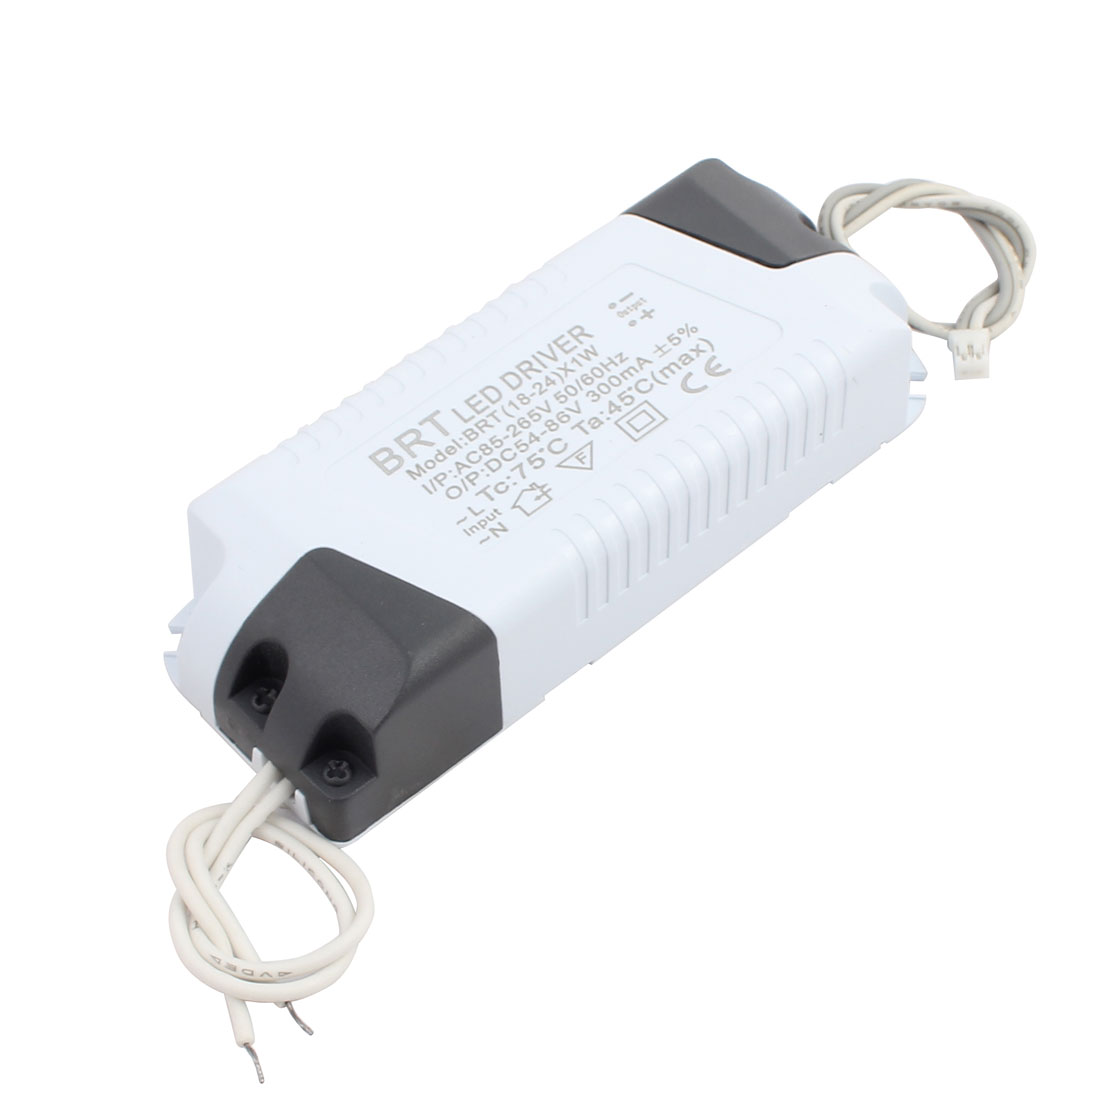 18-24 x 1W Small Terminal Connector Advanced Plastic Shell LED Driver Power Supply